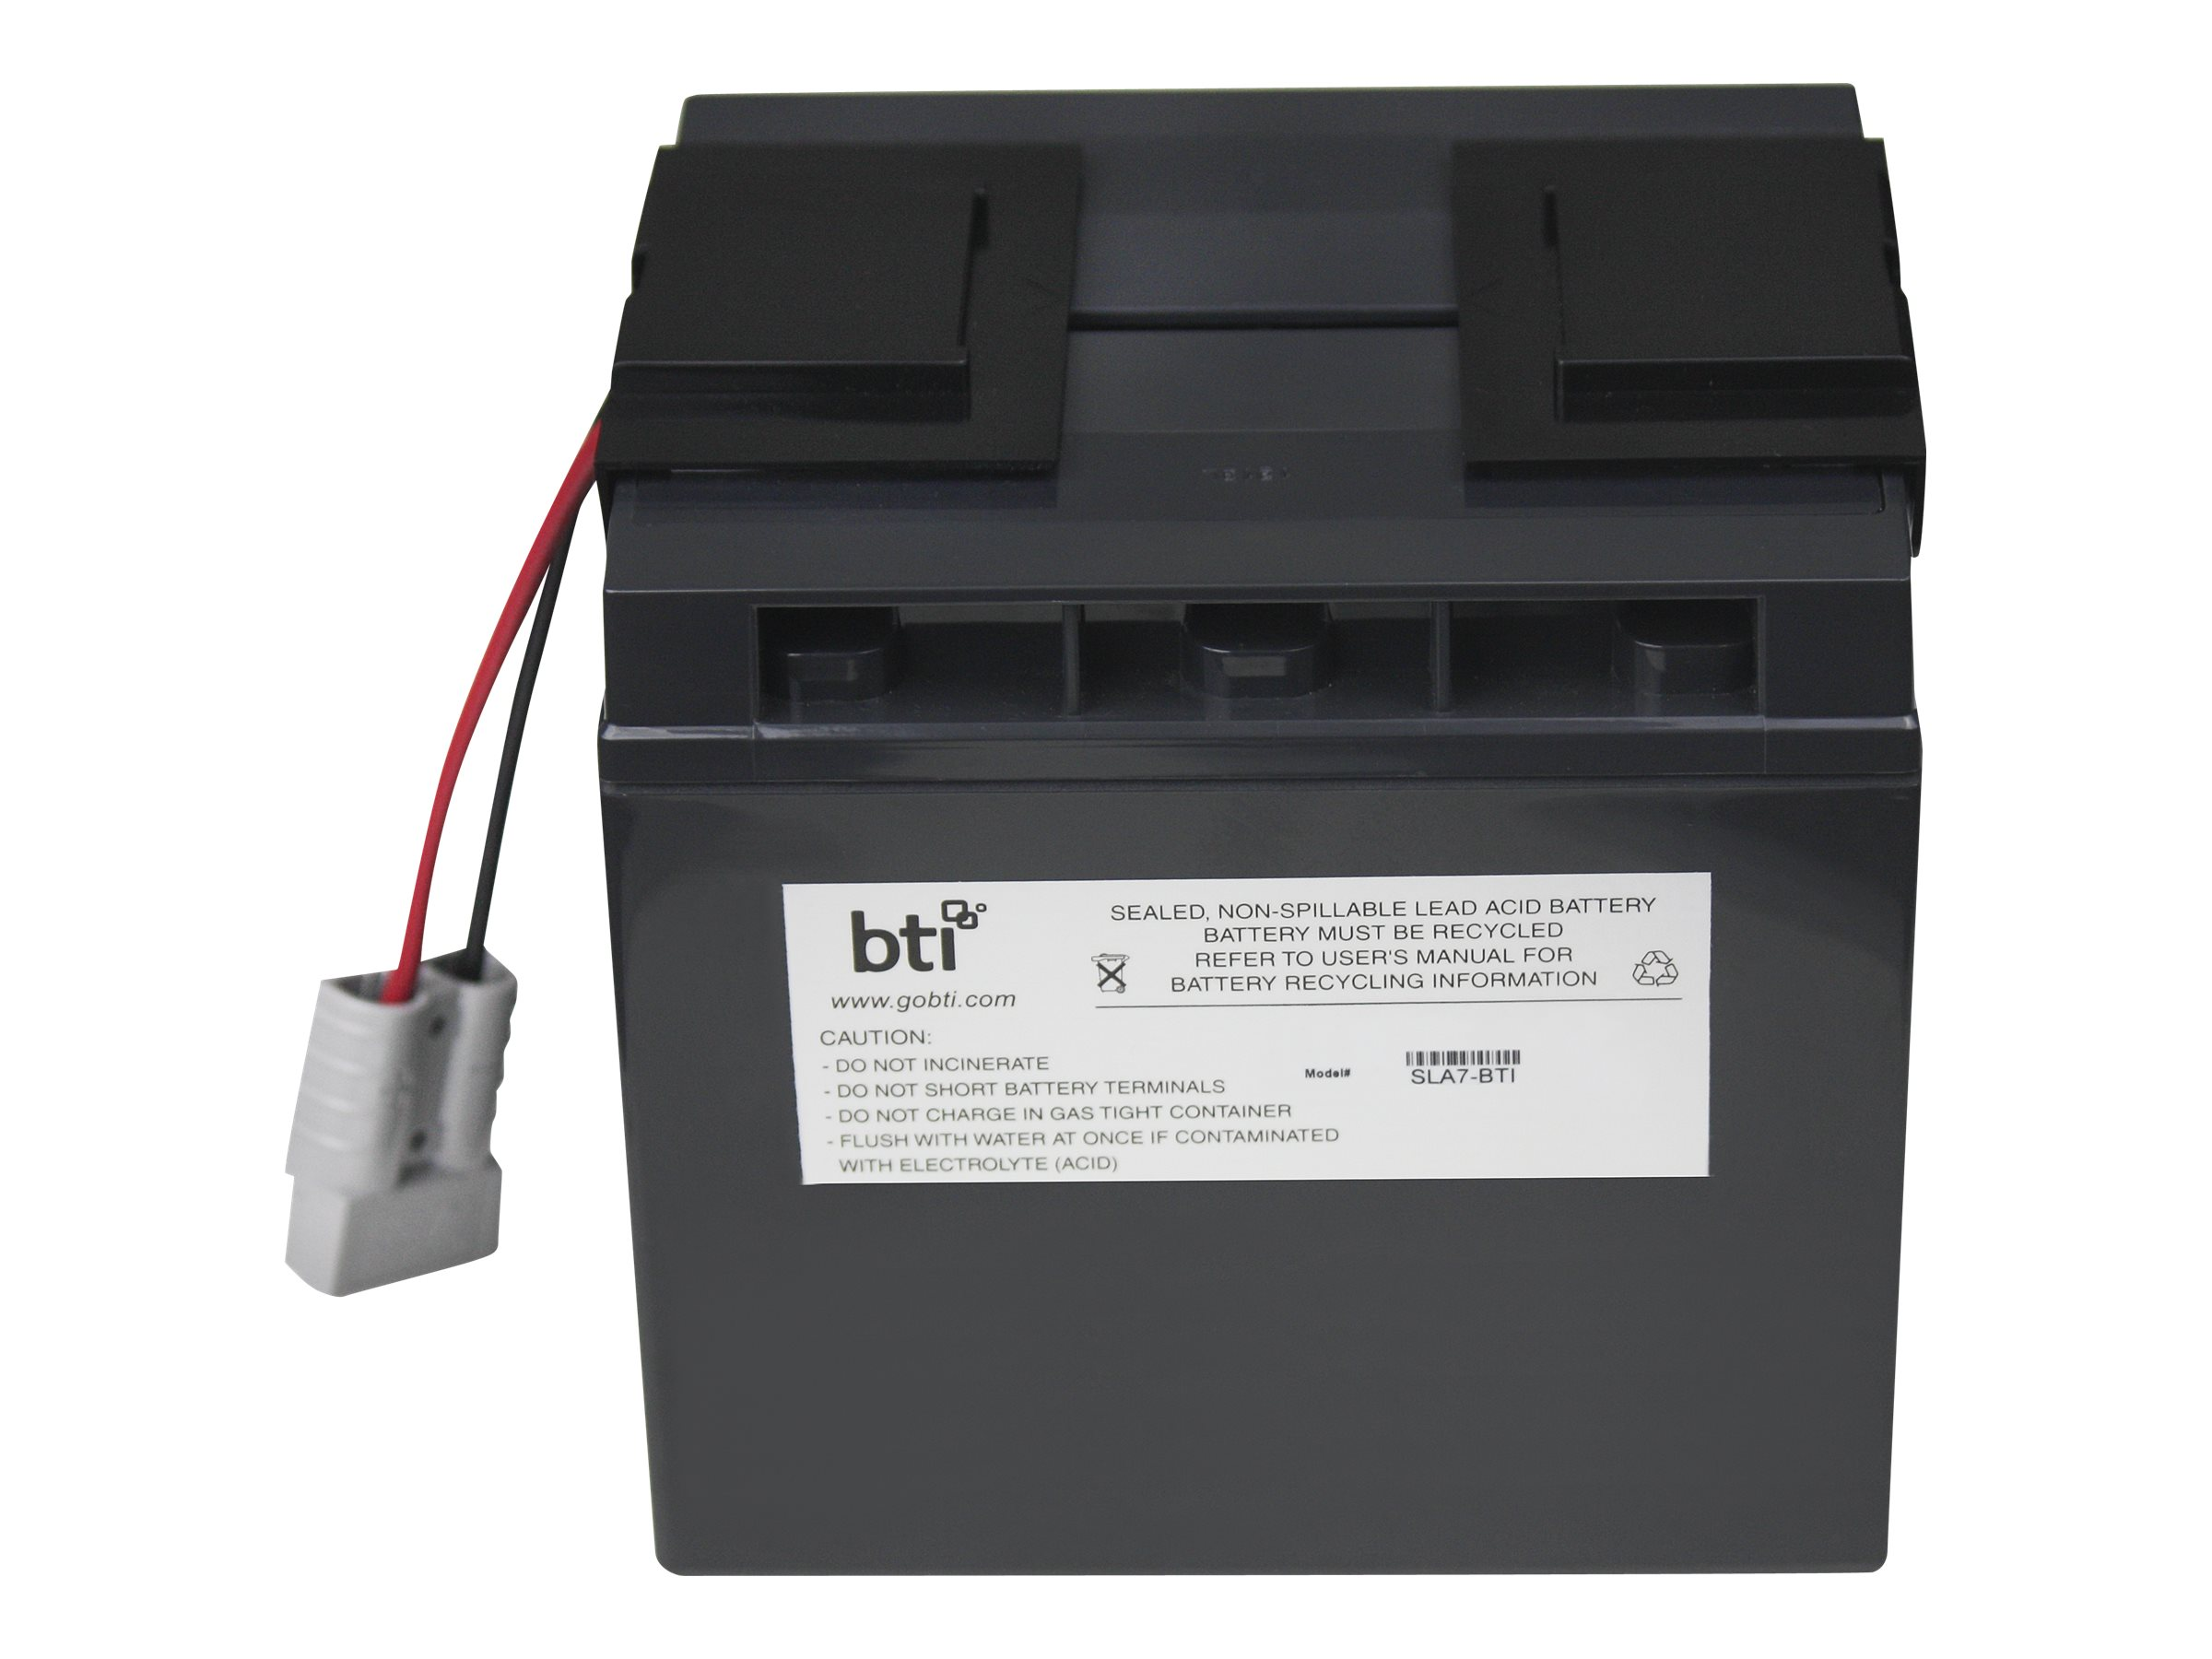 BTI Replacement Battery, RBC7 for APC SU700XL, SU1000XL, BP1400, SU1400 Models